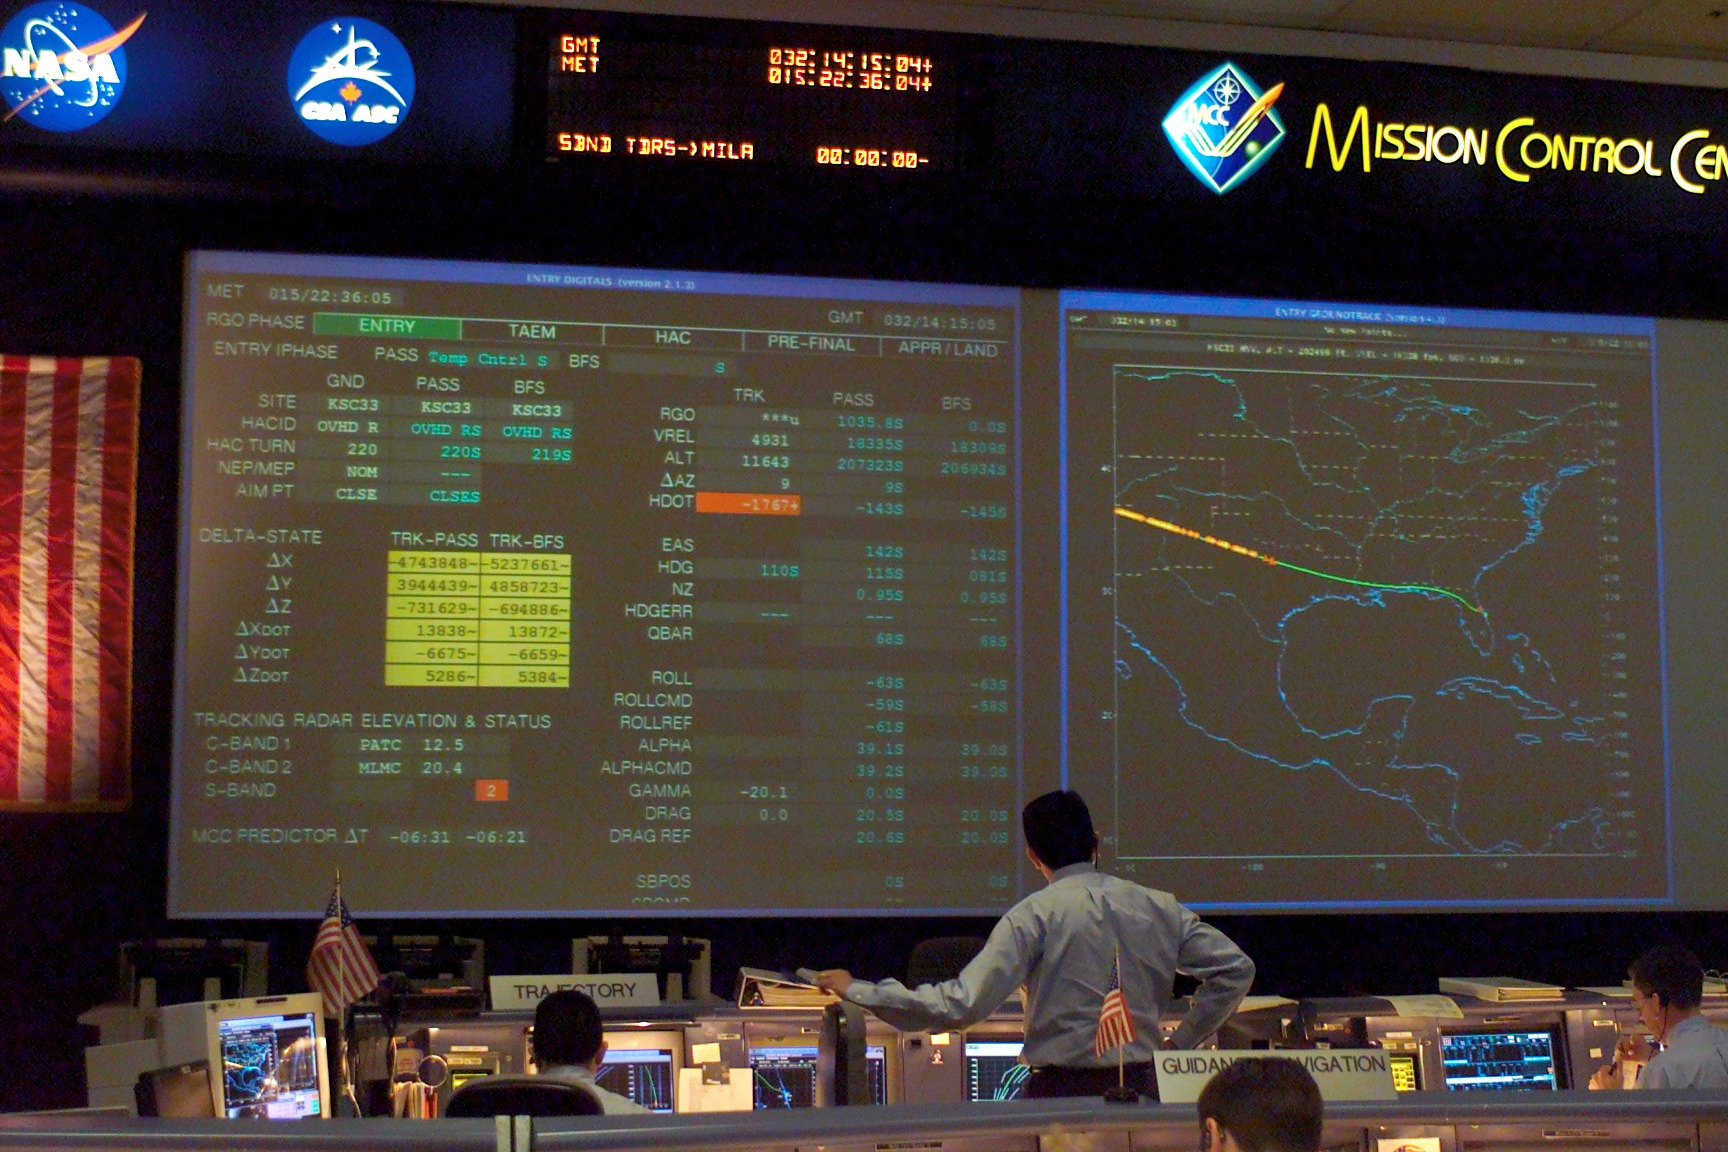 Shuttle Flight Control Room as Contact with Columbia Is Lost